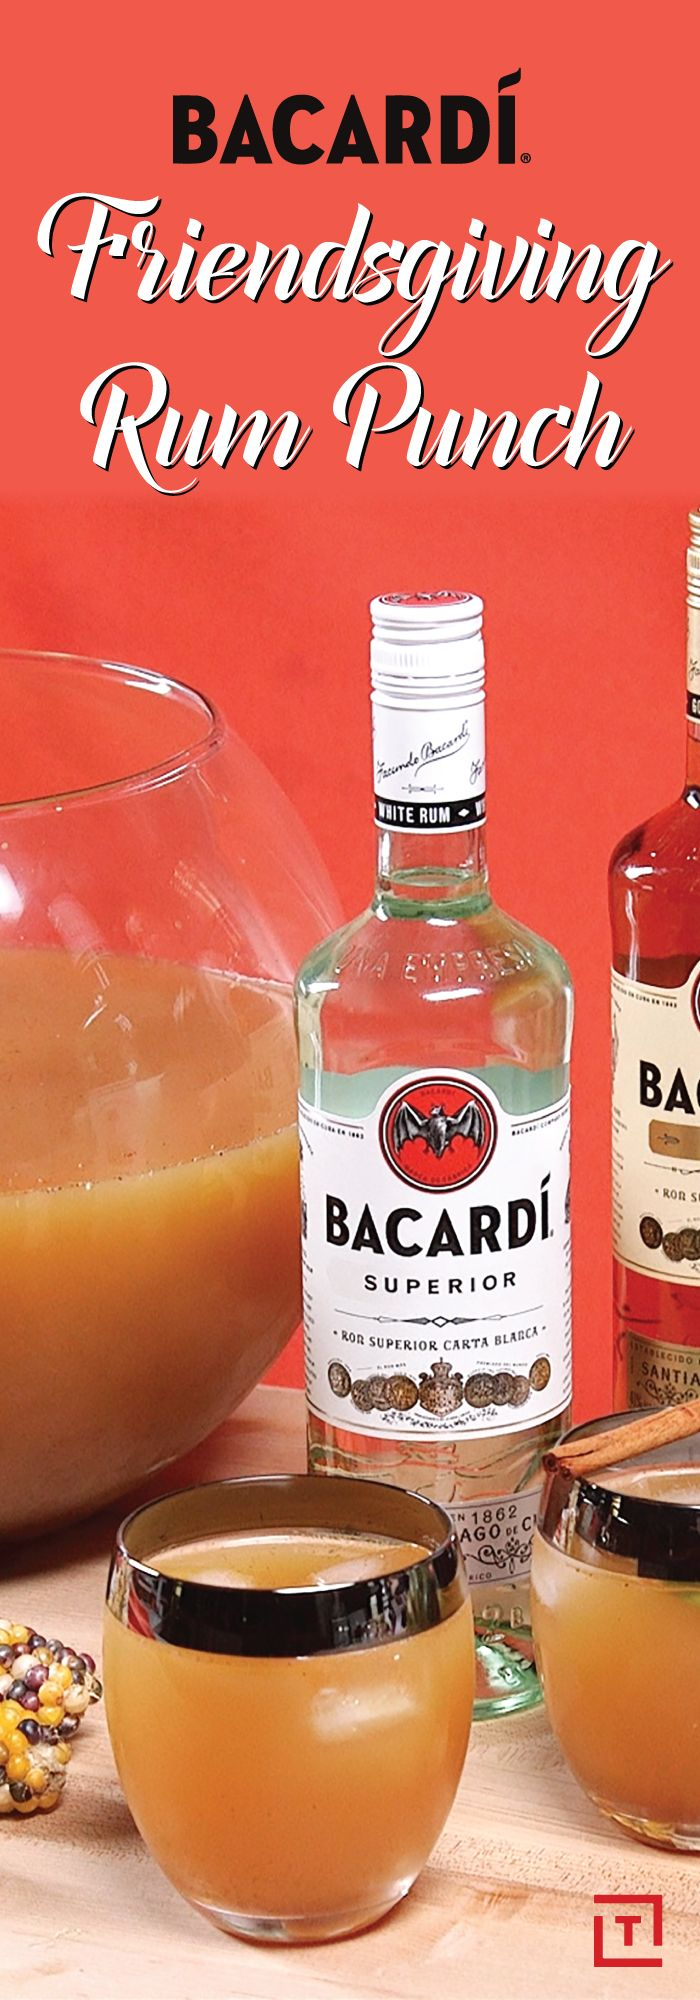 It's getting really cold outside, and you've gathered a bunch of your pals over for Friendsgiving. And sure, you're all going to be stuffed after a while, so you'll need a drink that can double as a dessert (sort of). This BACARDI Friendsgiving Rum Punch will definitely do the trick: mixing tart lemonade and apple cider, cinnamon, and two kinds of BACARDI rum, it's bound to be a new holiday favorite.